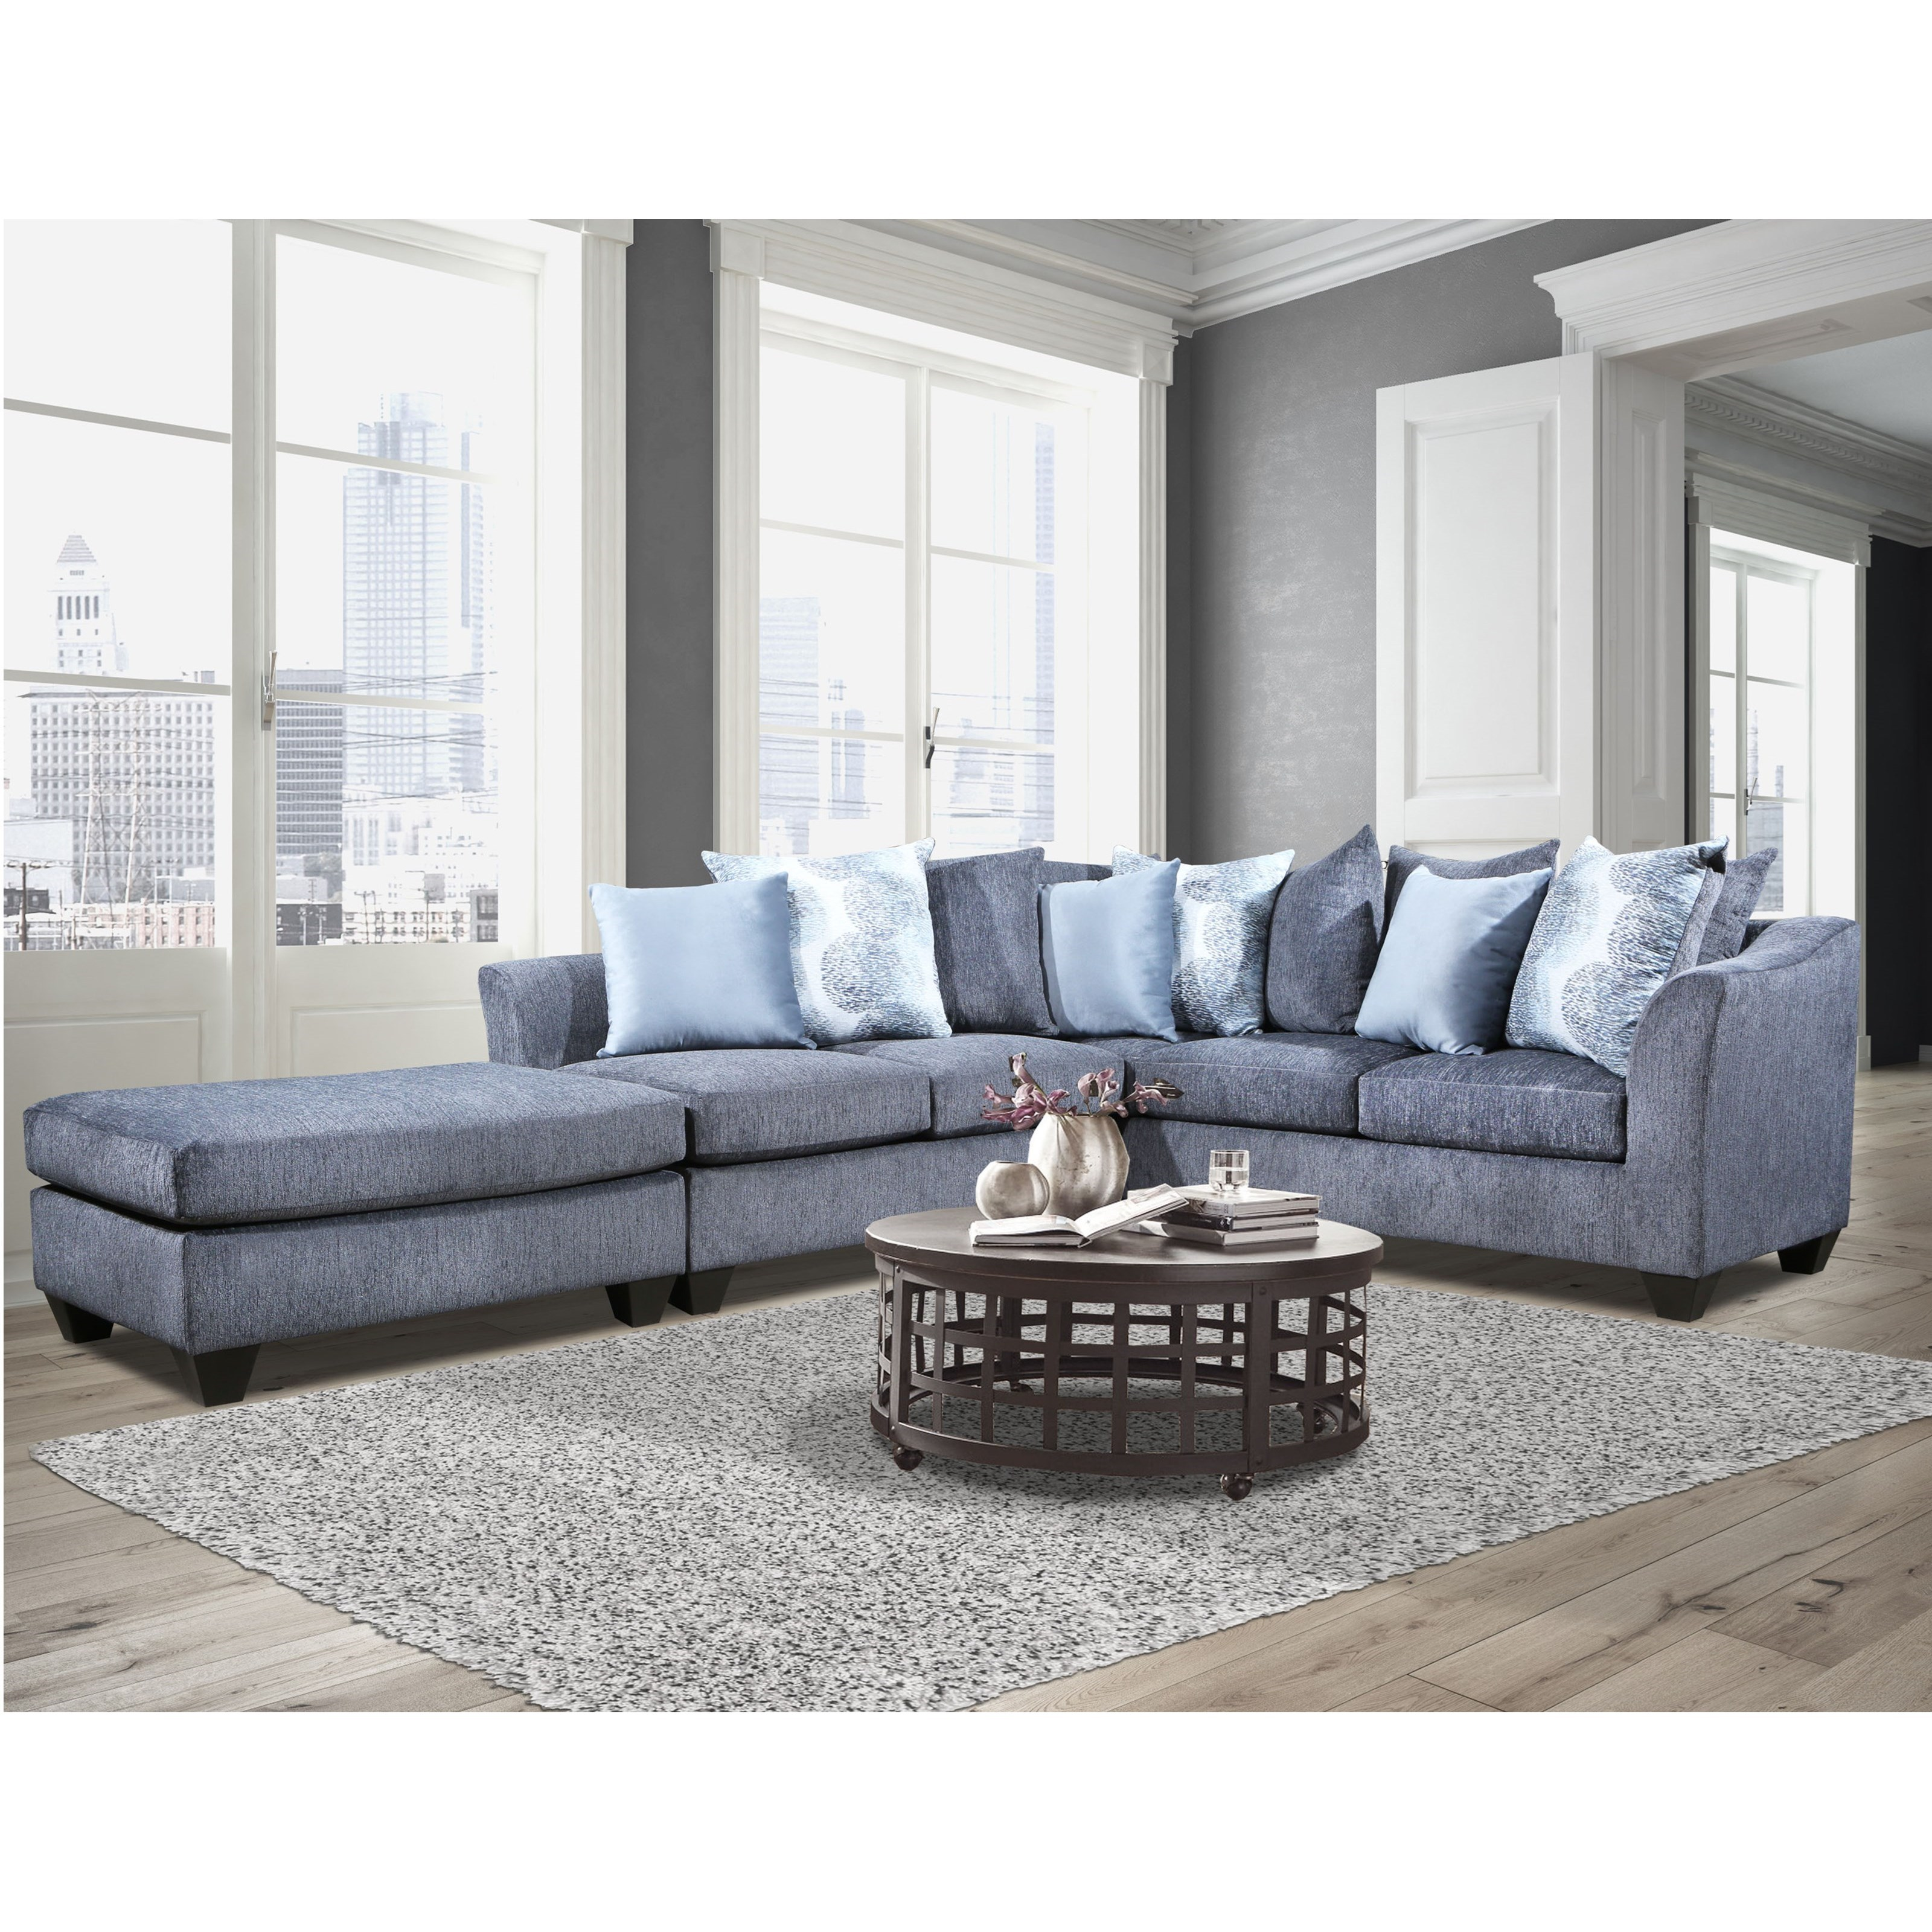 1360 Sectional by Peak Living at Prime Brothers Furniture